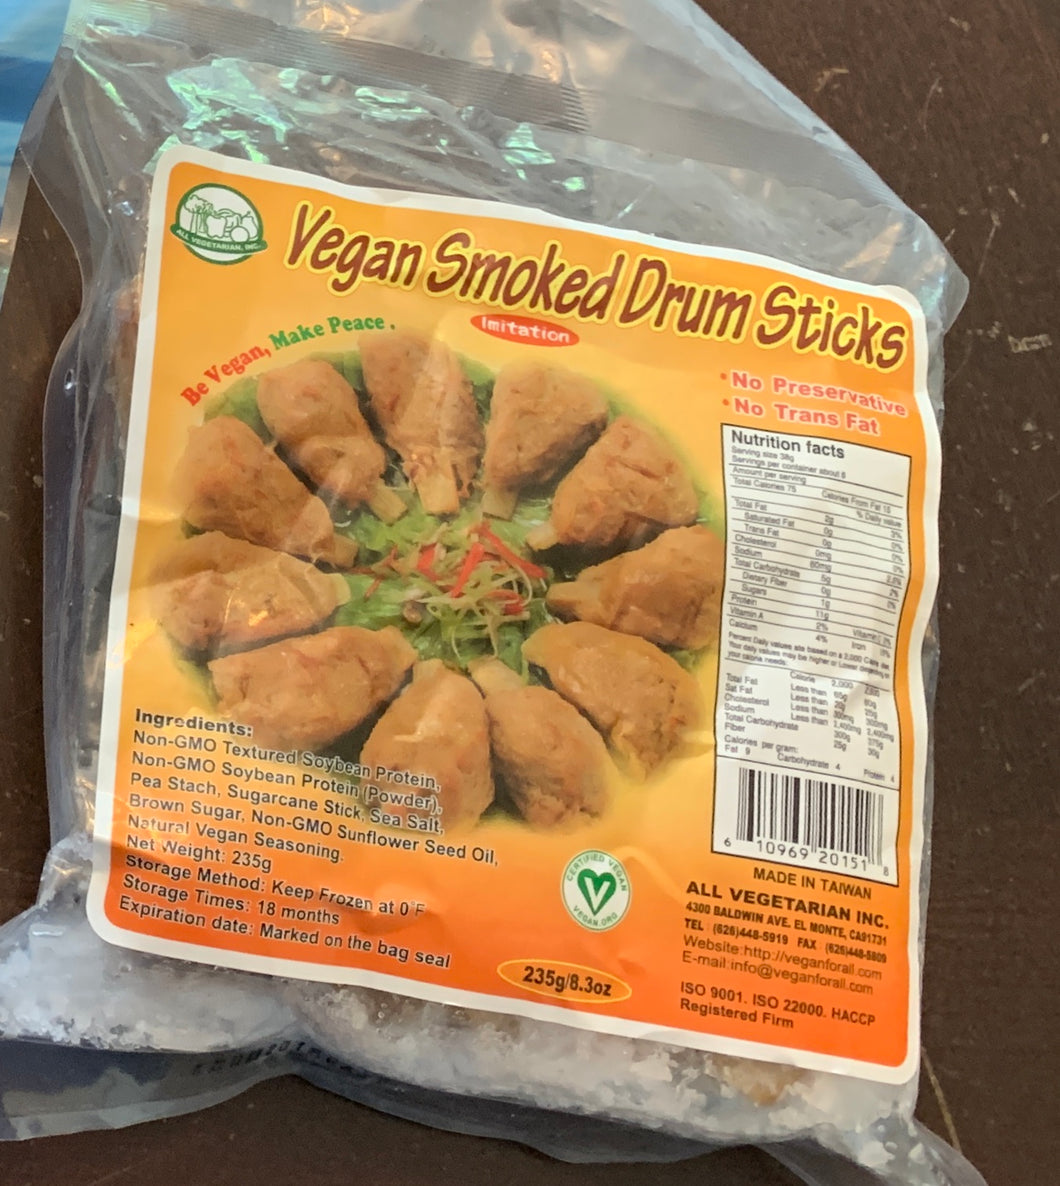 All Vegetarian, Inc - Vegan Smoked Drumsticks (Family Size)